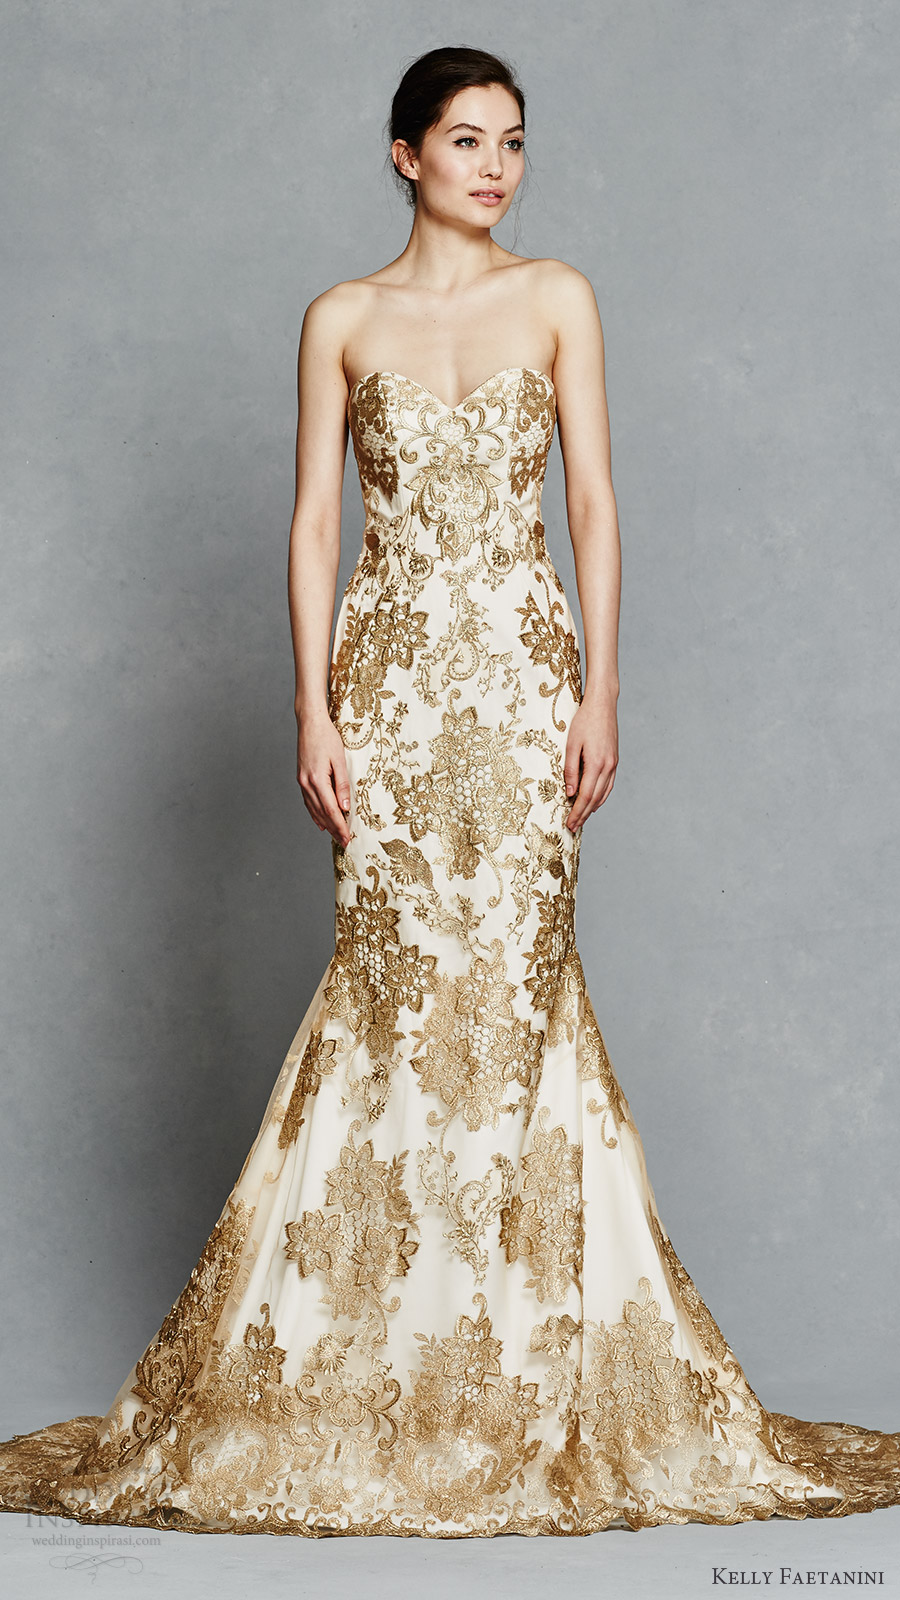 kelly faetanini bridal spring 2017 strapless sweetheart fit flare wedding dress (gwendolyn) mv gold color embroidery